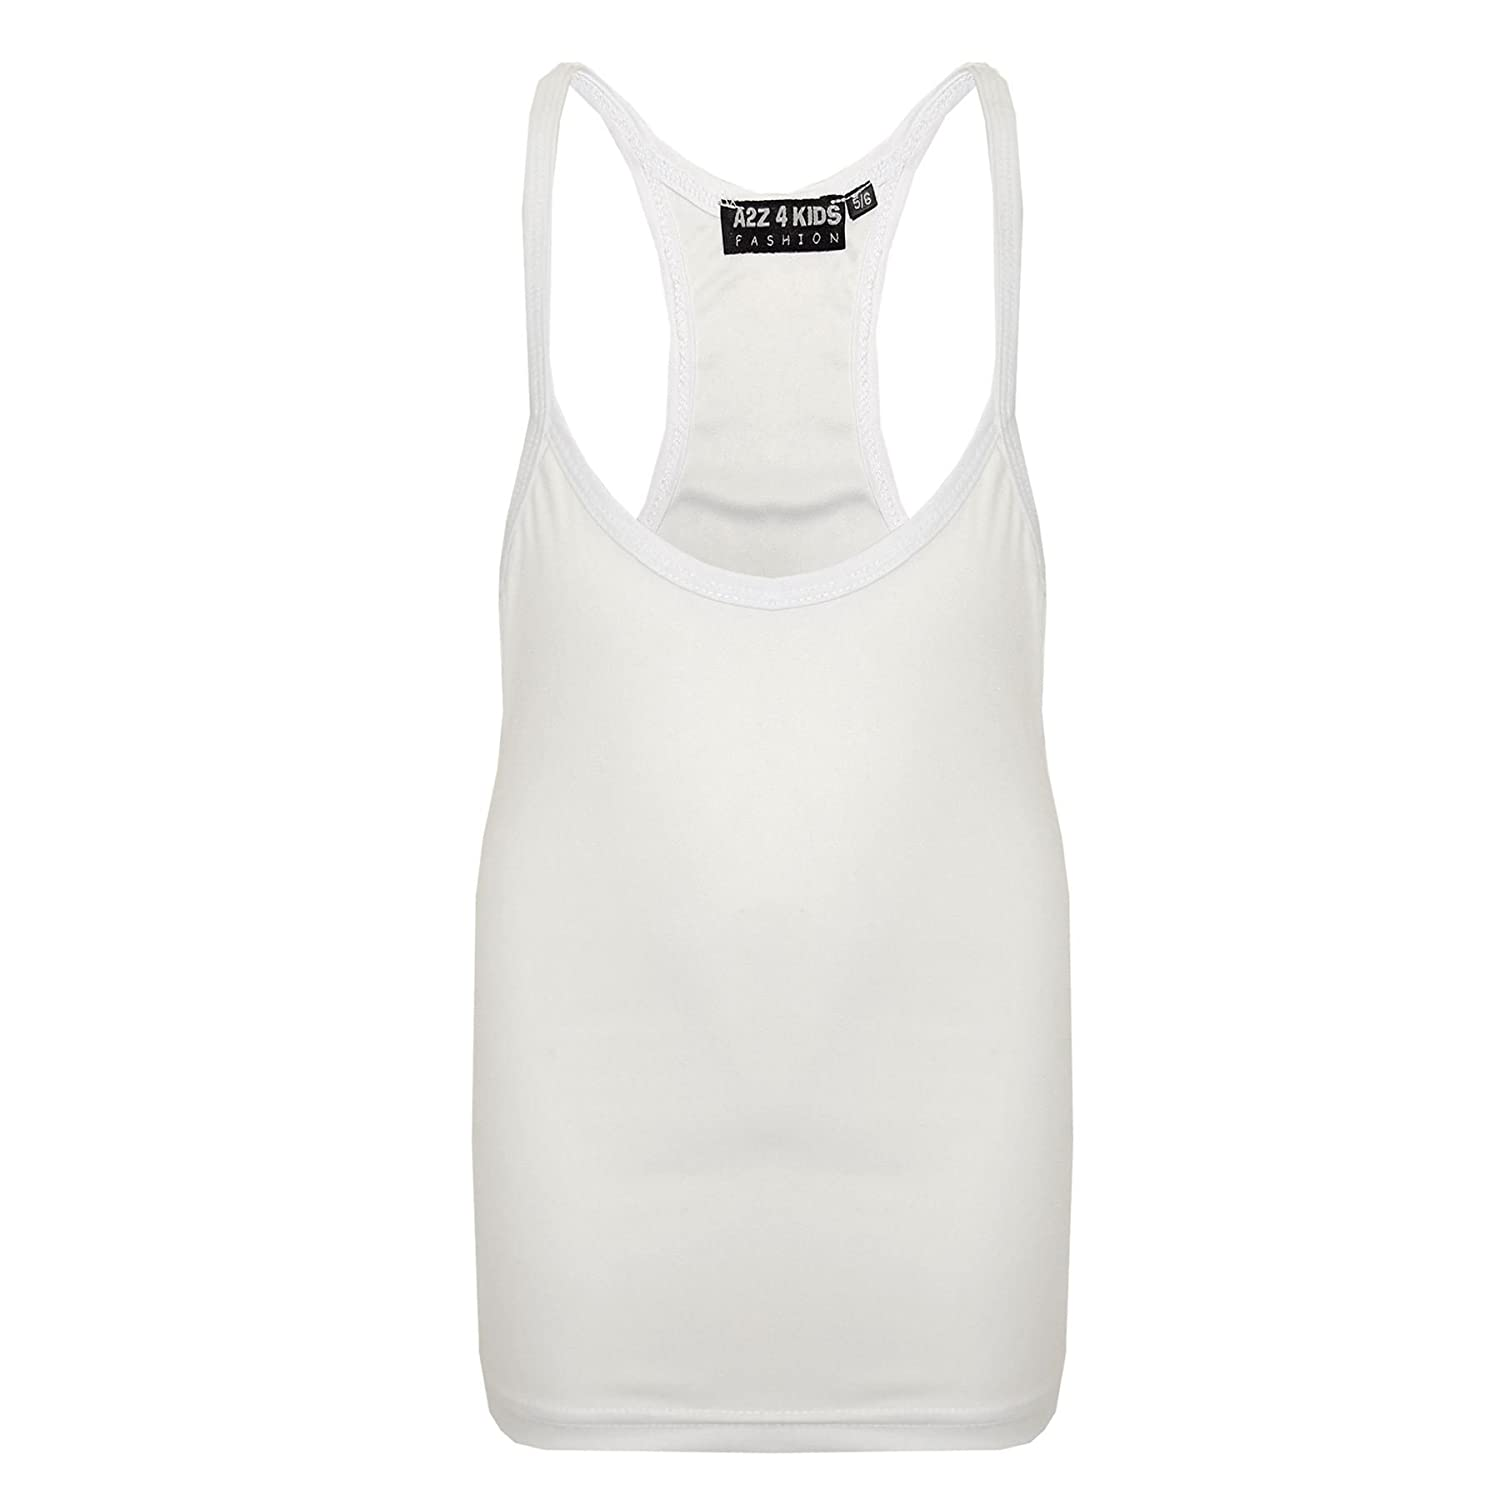 A2Z 4 Kids® Kids Girls Racer Back Vest Top Designer's White Fashion Tank Tops T Shirts New Age 5 6 7 8 9 10 11 12 13 Years